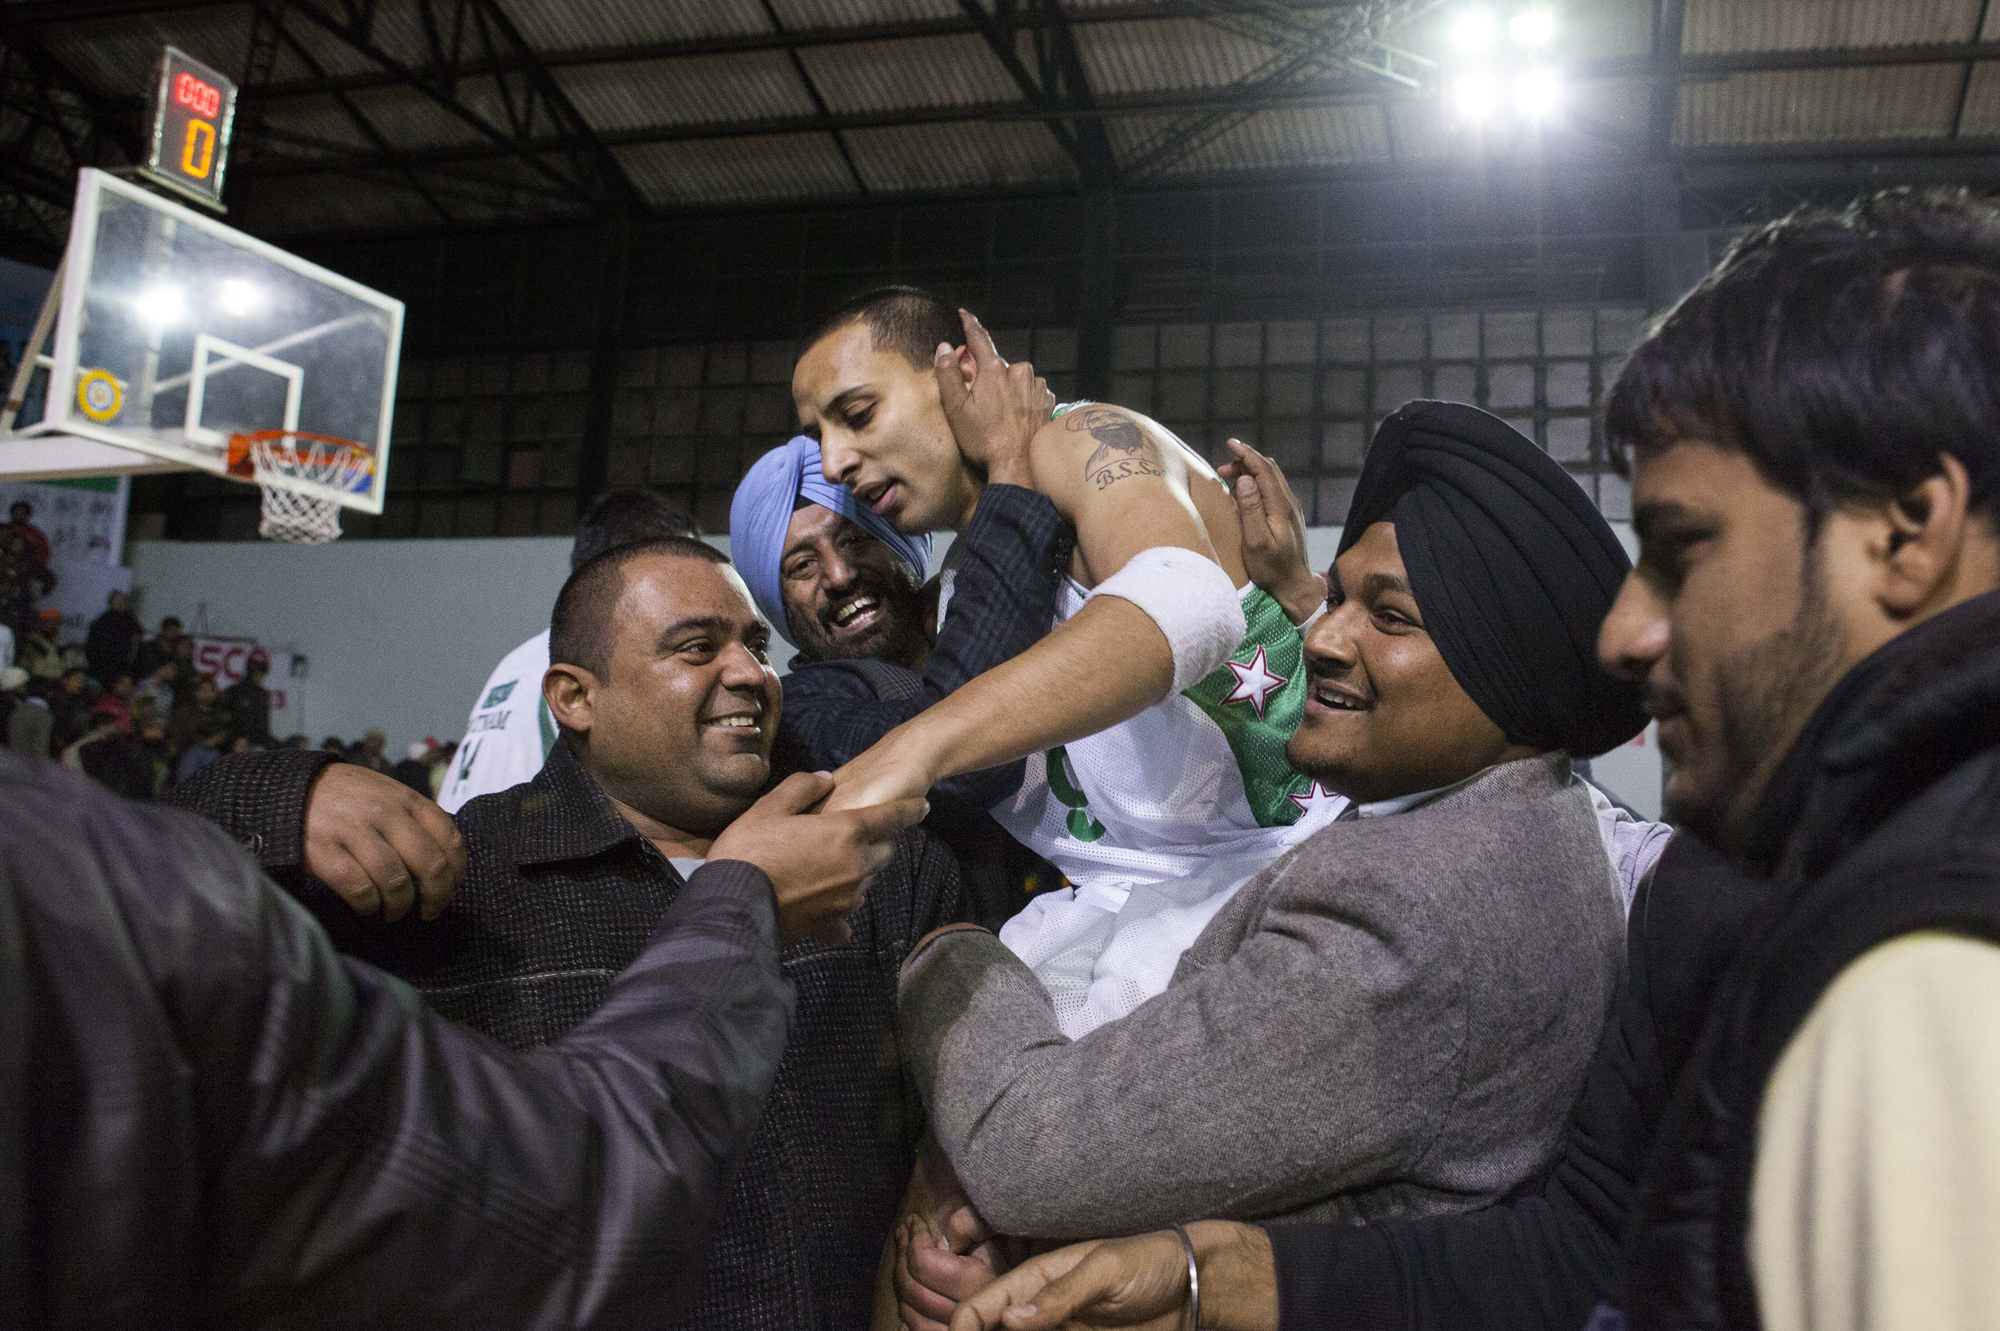 Punjab guard TJ Sahi is lifted by adoring fans in his hometown of Ludhiana, Punjab as they celebrate Punjab's semi-finals victory over Tamil Nadu at the 63rd Senior National Basketball Championship, 2013.